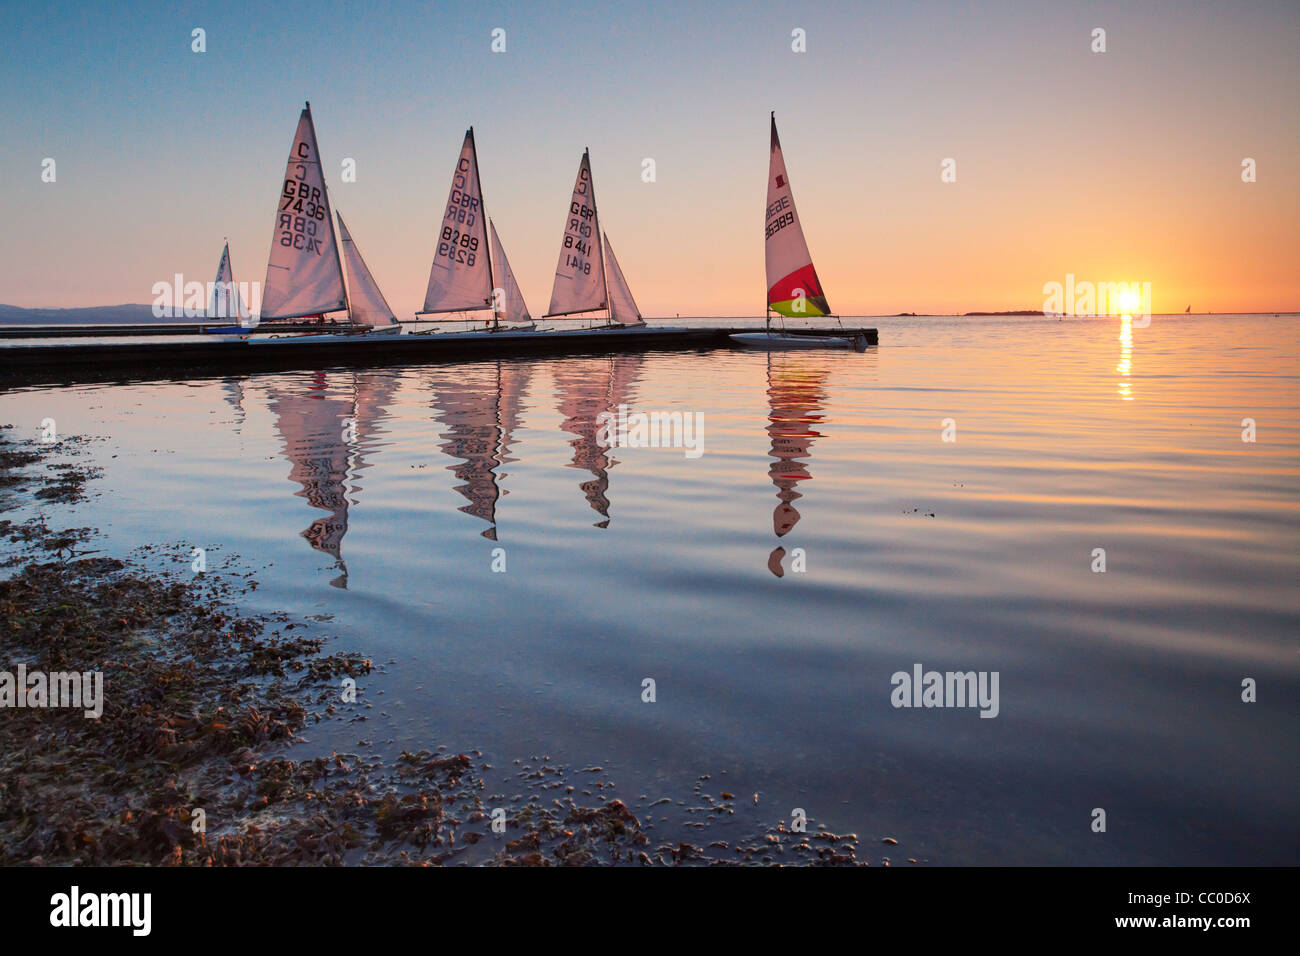 Sailing boats moored at sunset on the marine lake at West Kirby, Wirral, UK - Stock Image